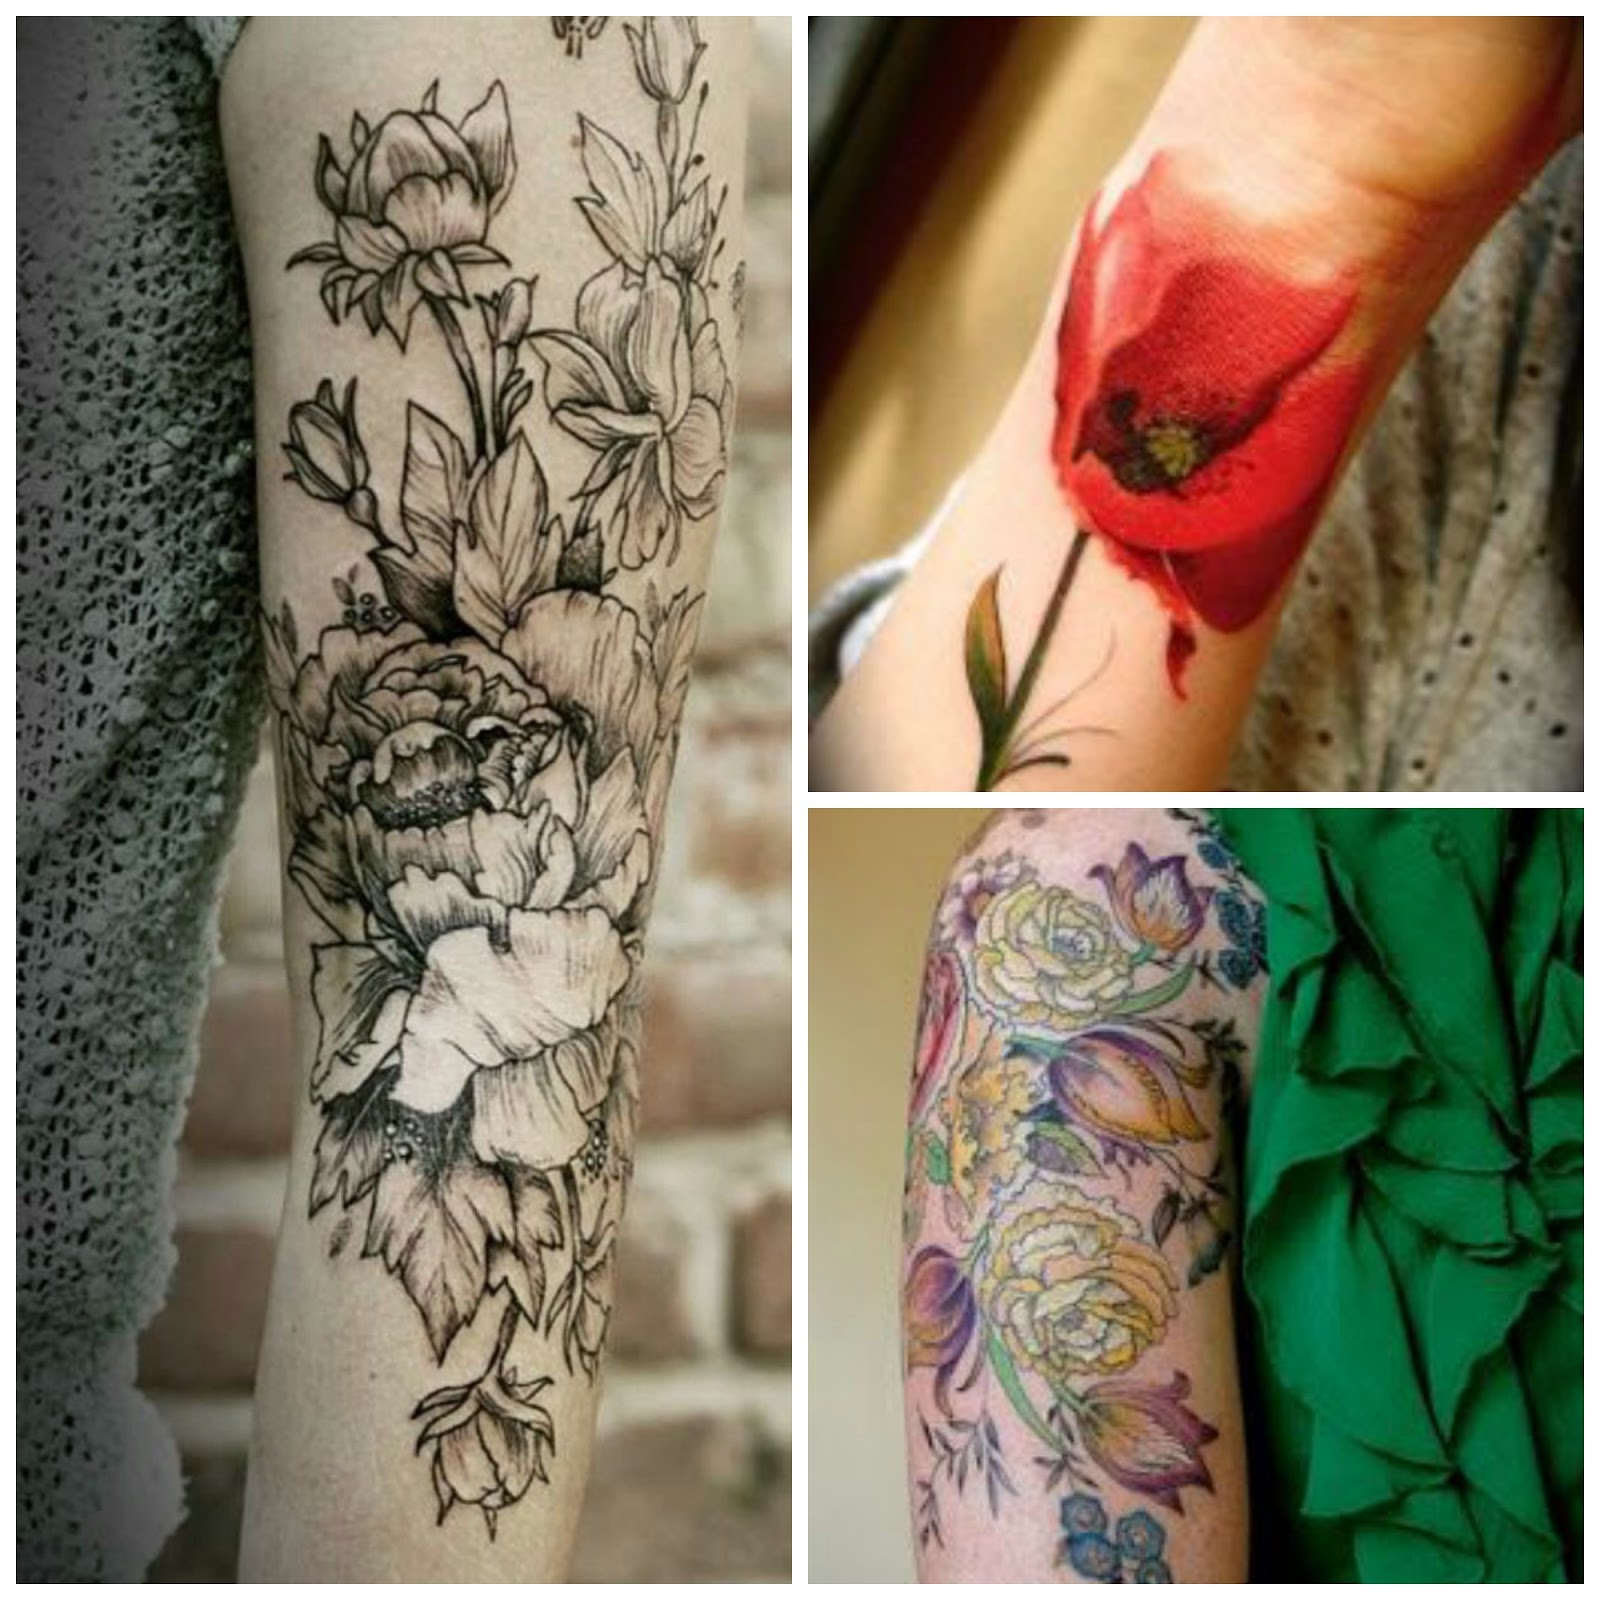 Tattoo Trends - Flowers